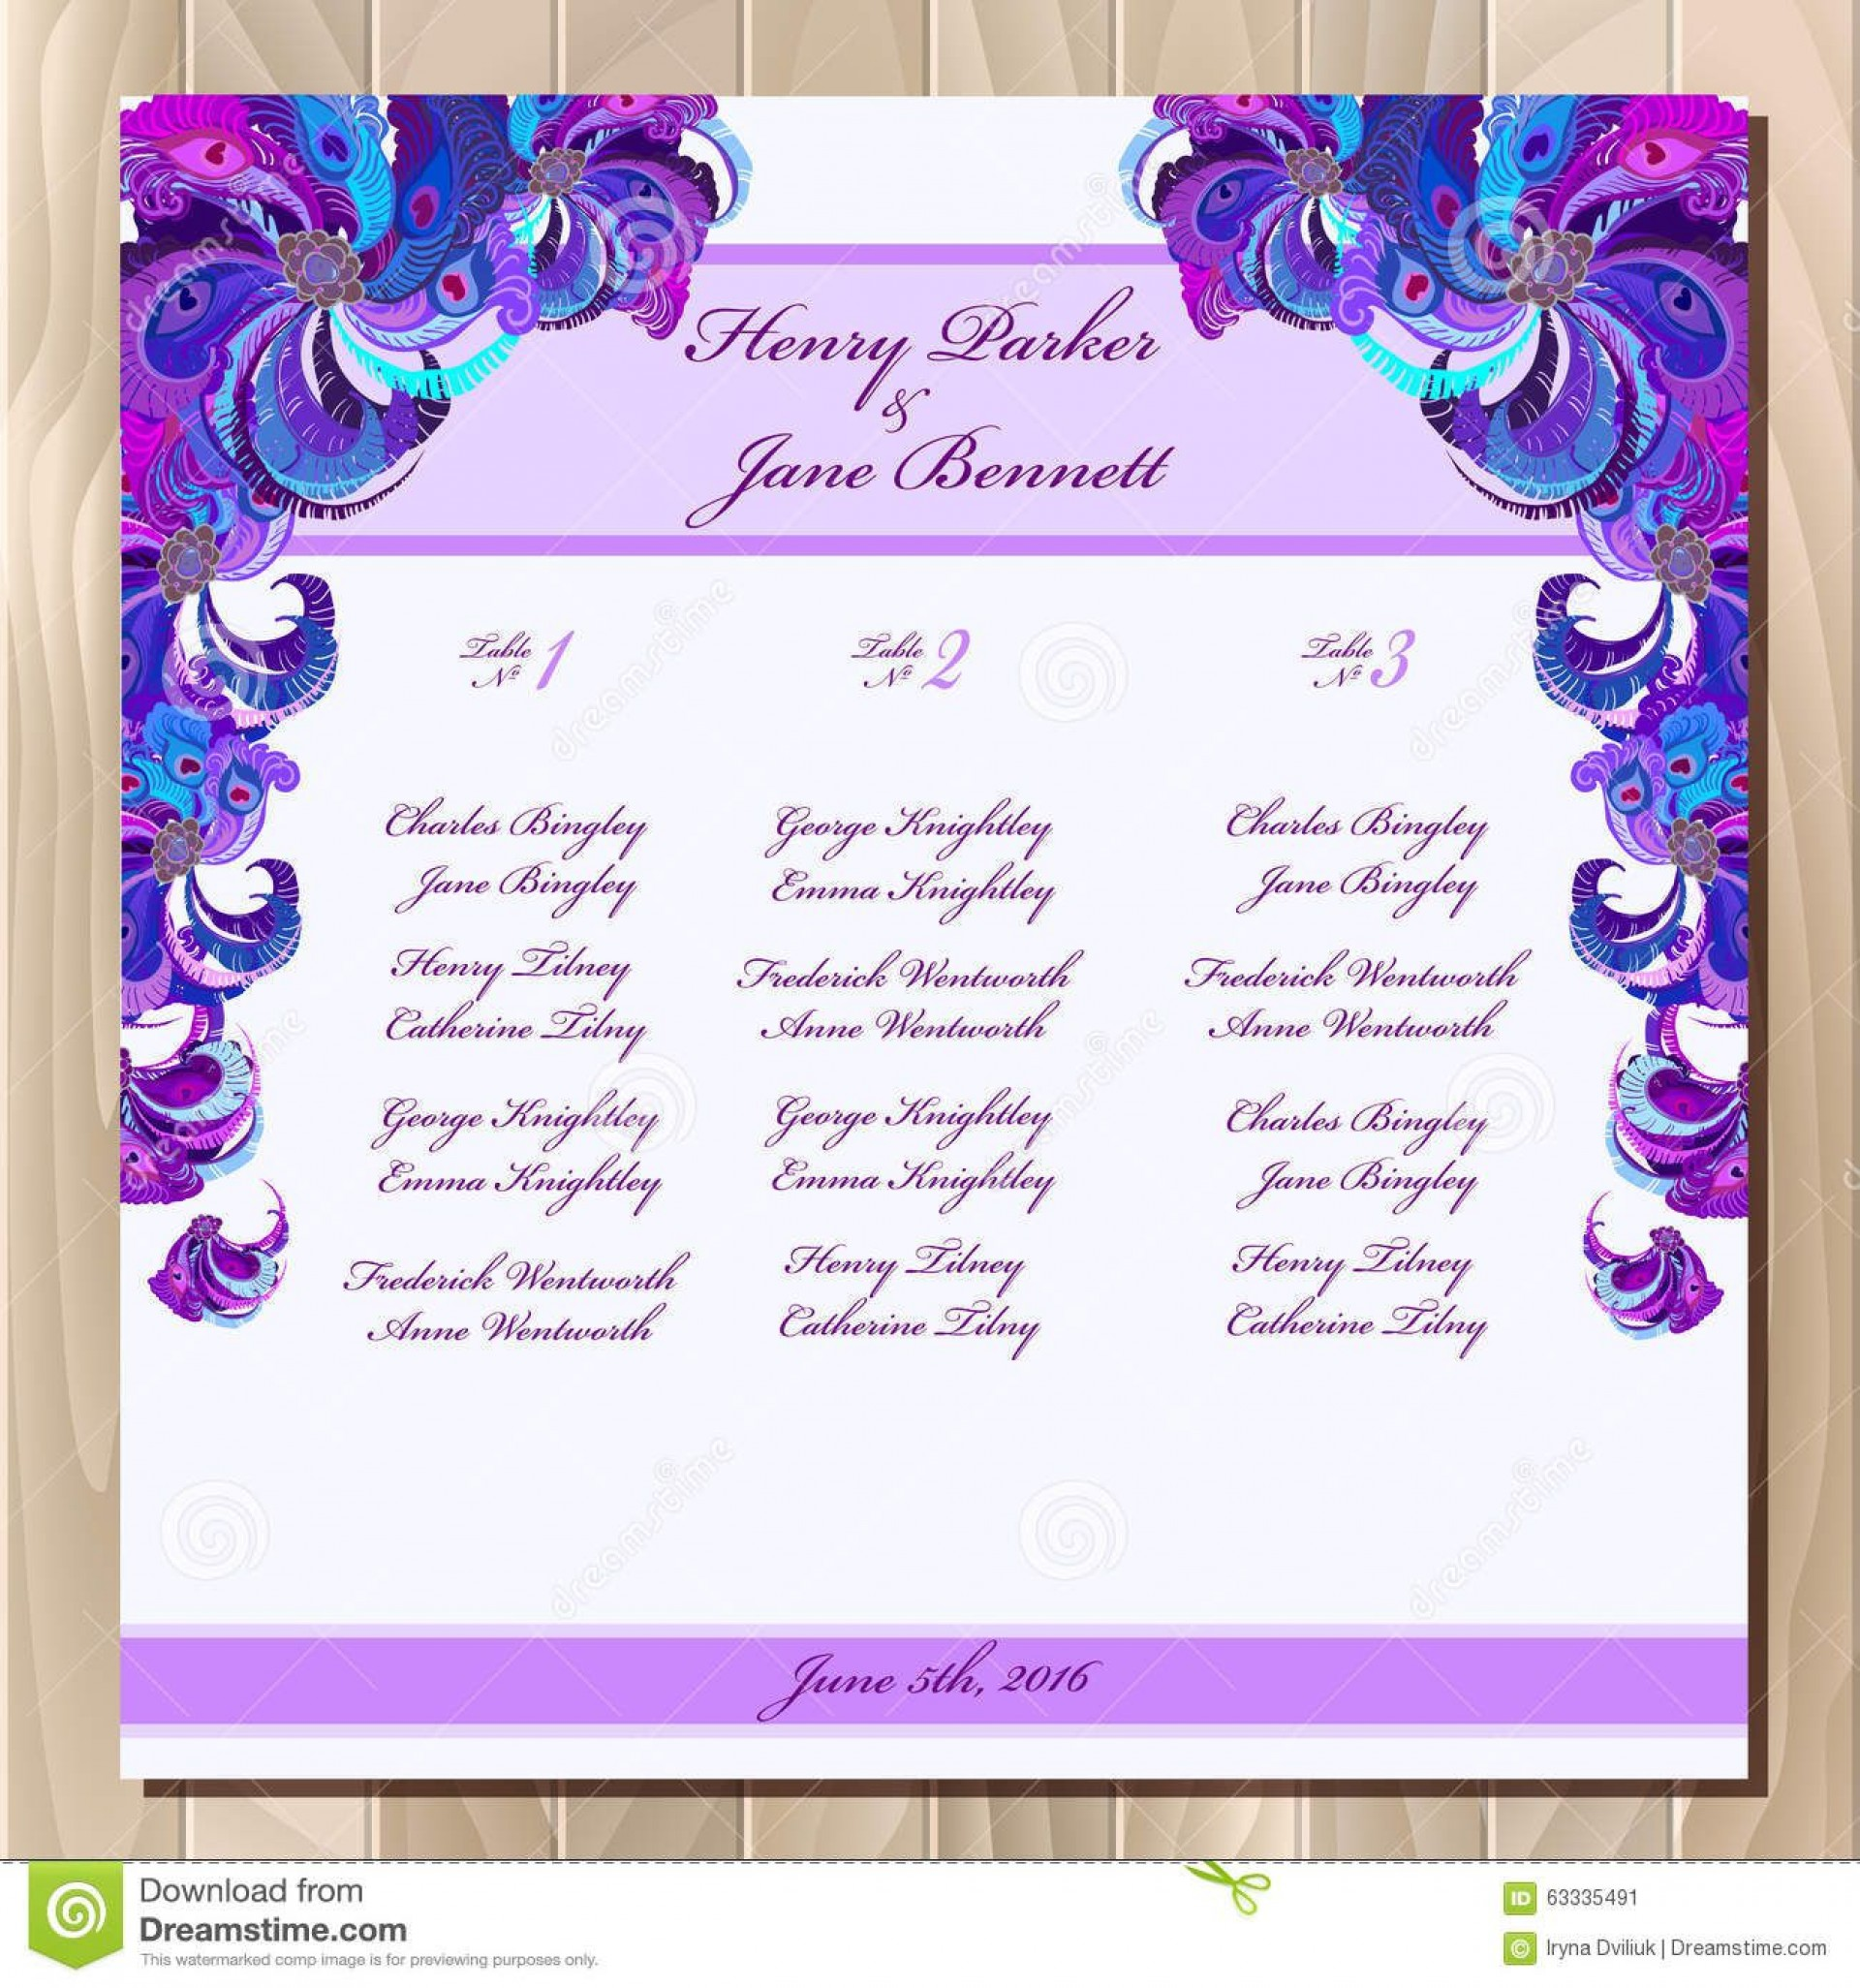 007 Singular Party Guest List Template Excel Free Highest Quality 1920